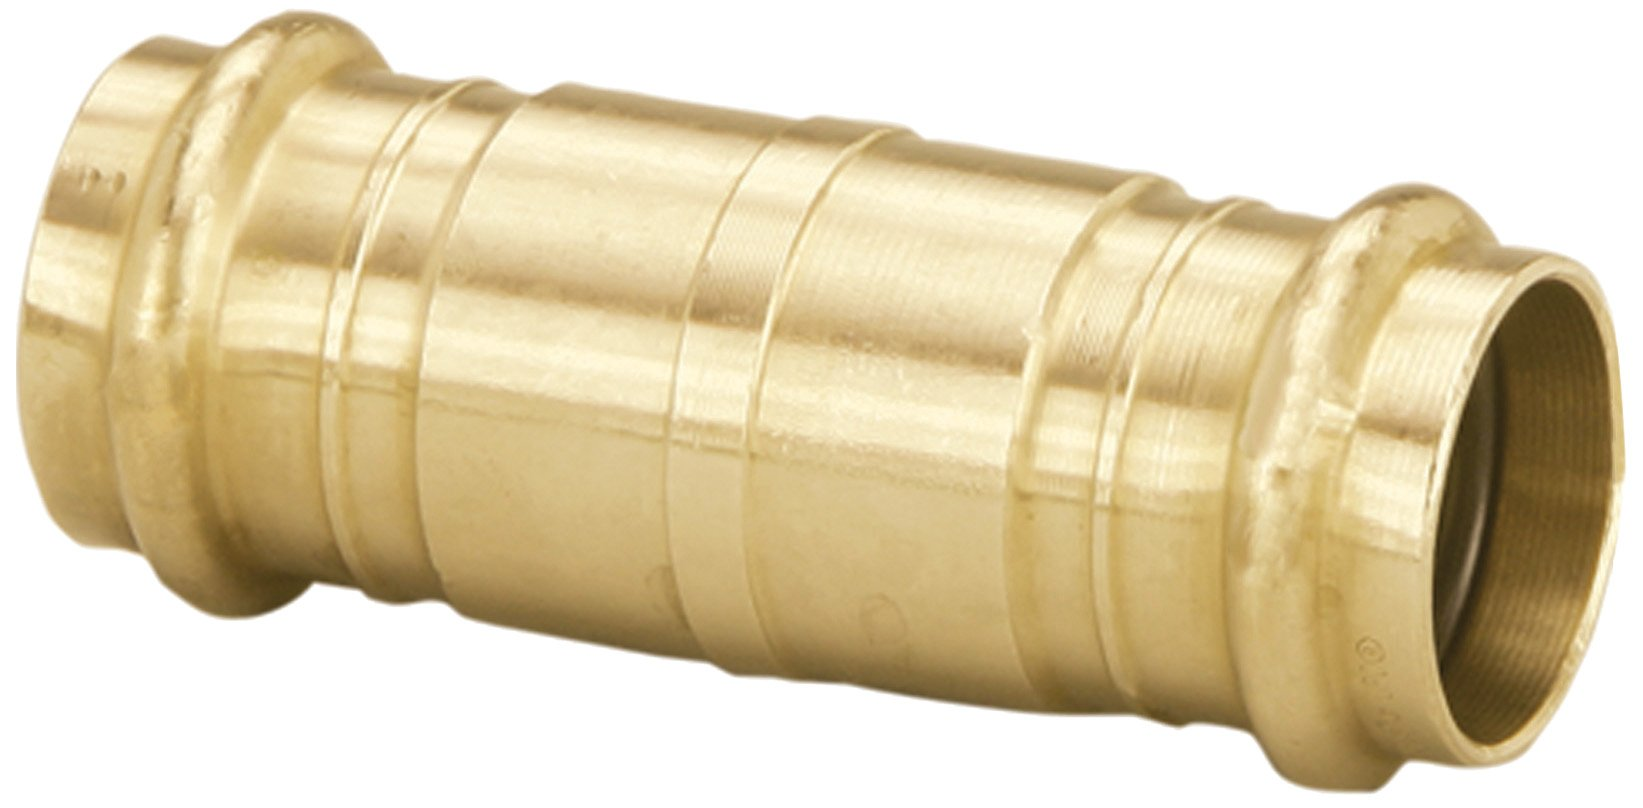 Viega 78218 ProPress Bronze Coupling Extended without Stop 3/4-Inch P x P